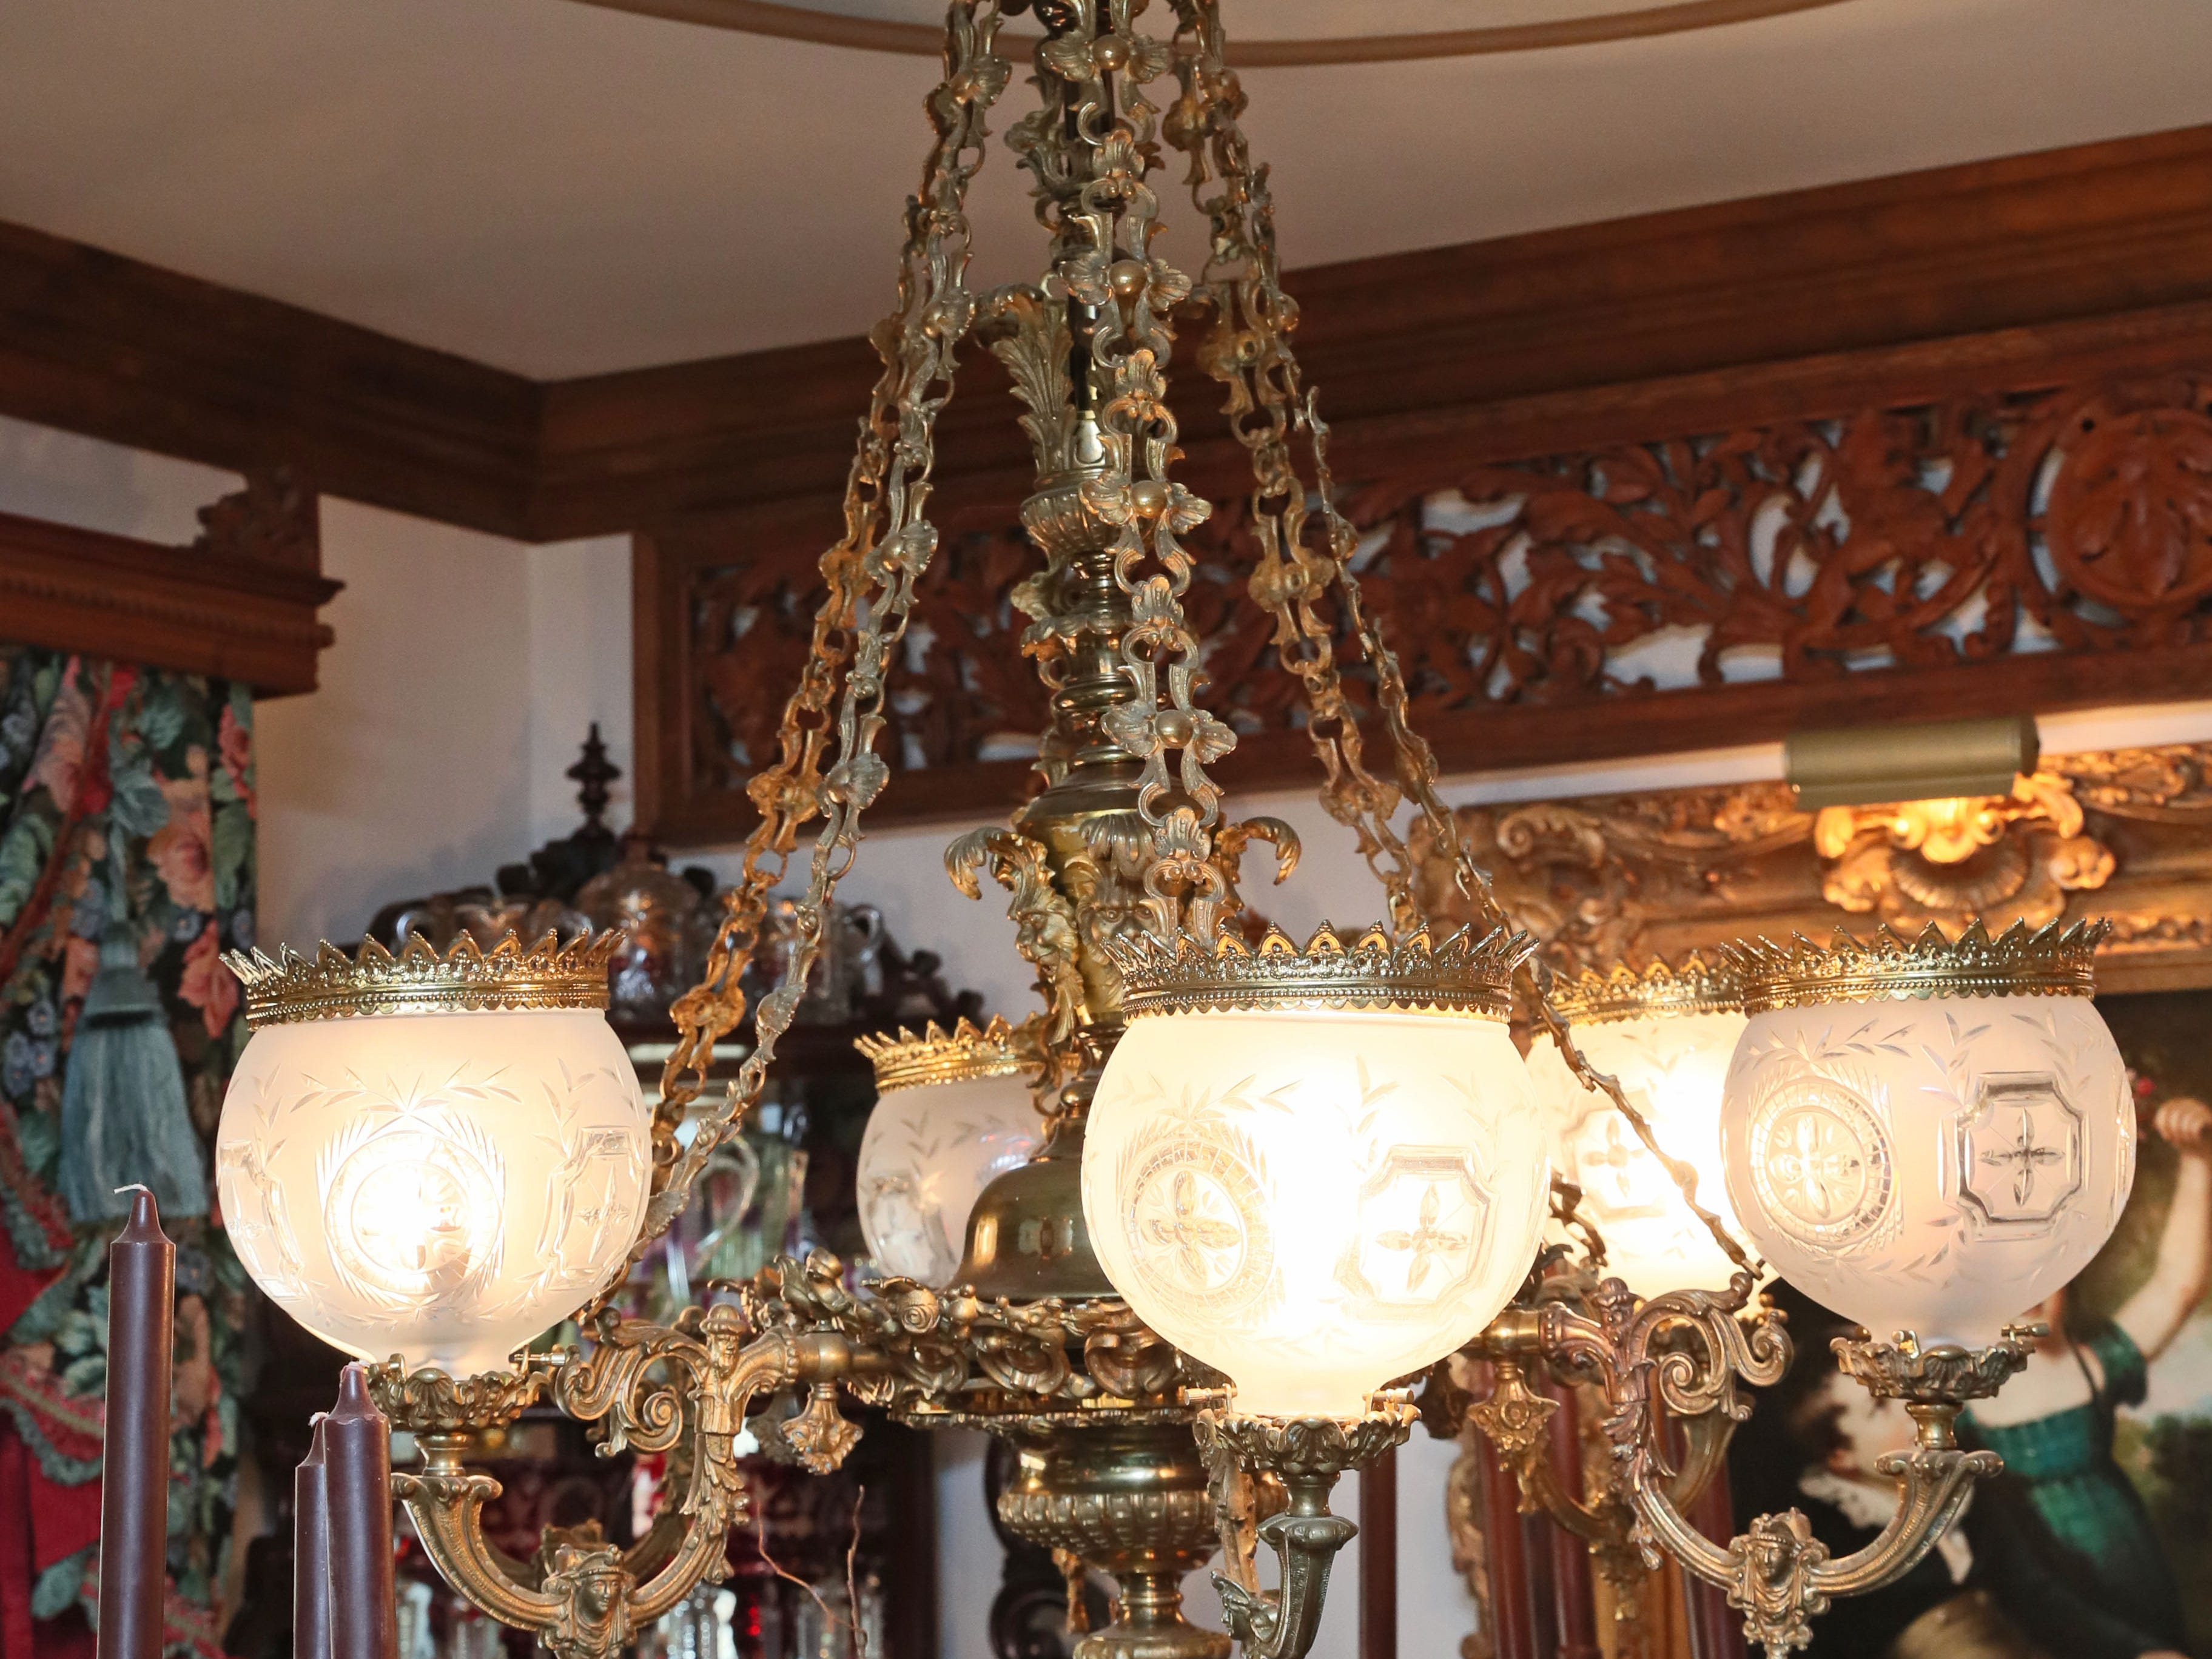 A Cornelius & Baker chandelier from the Josiah Noonan House in Milwaukee hangs above the dining room table.